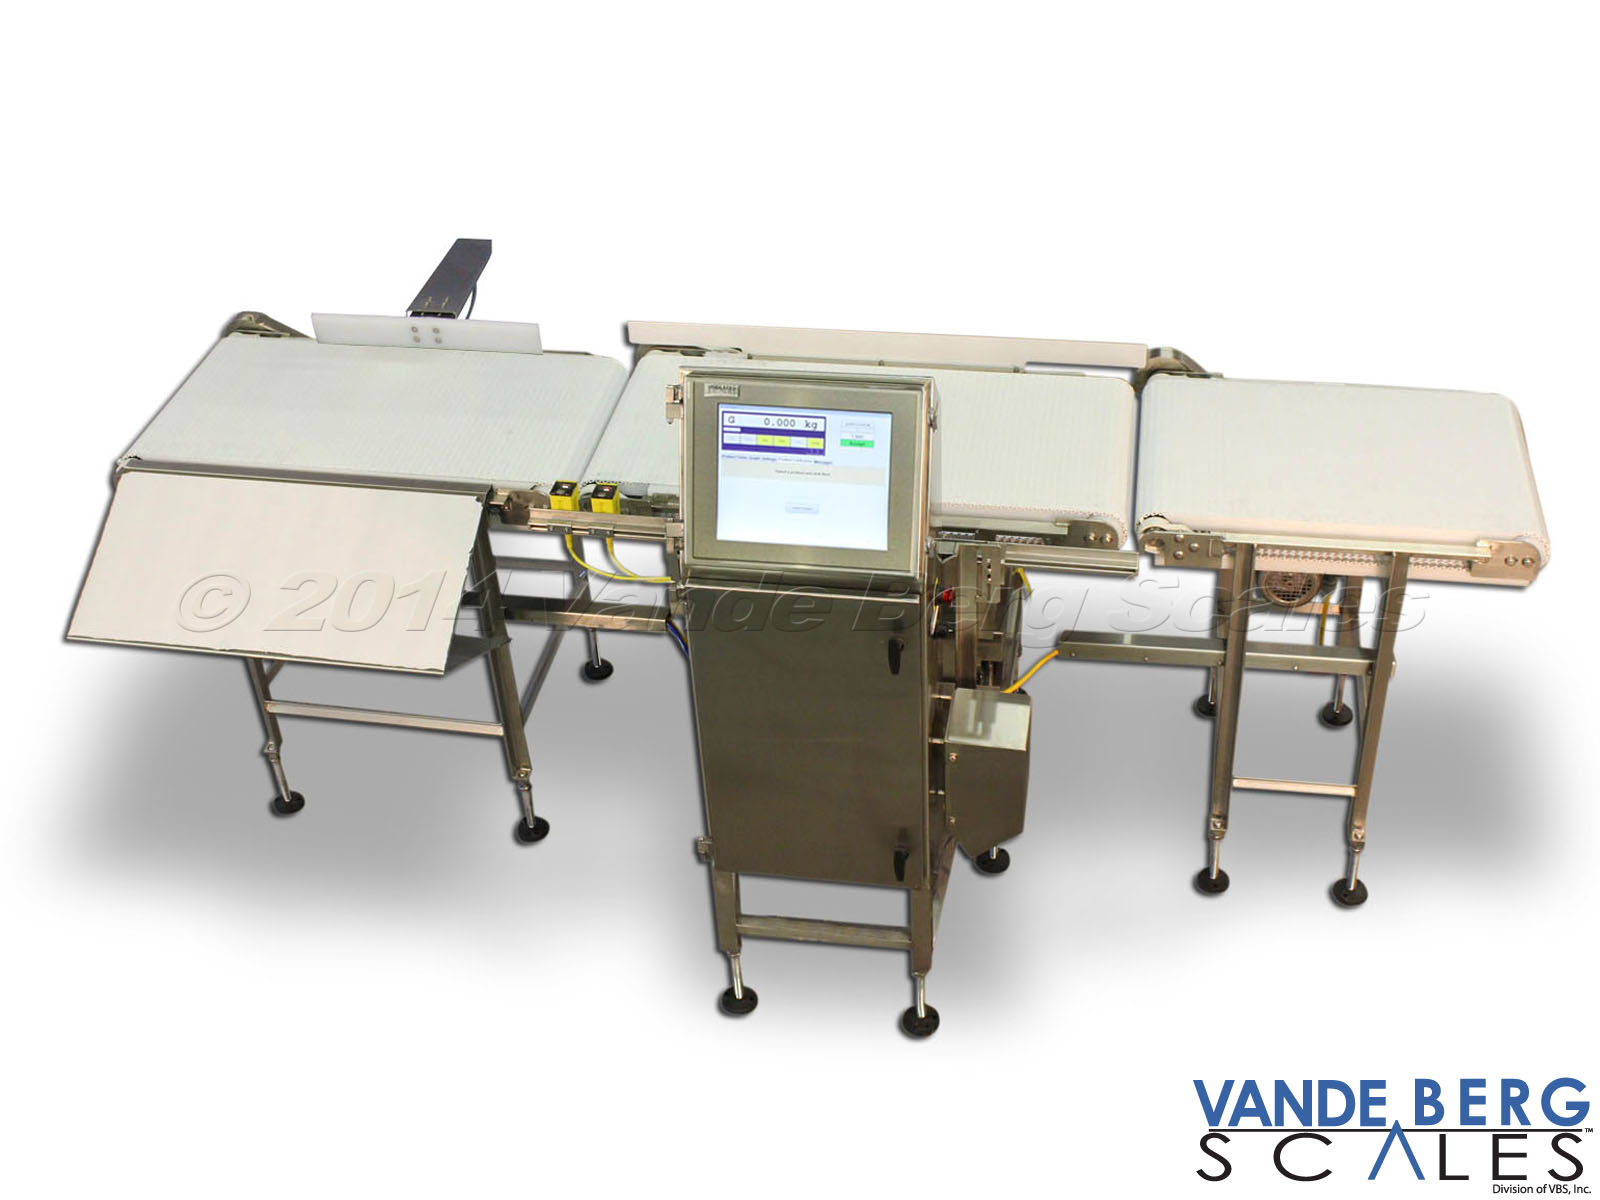 In-Motion checkweigher with infeed conveyor (right), 17-inch HMI touchscreen and outfeed conveyor with divert mechanism